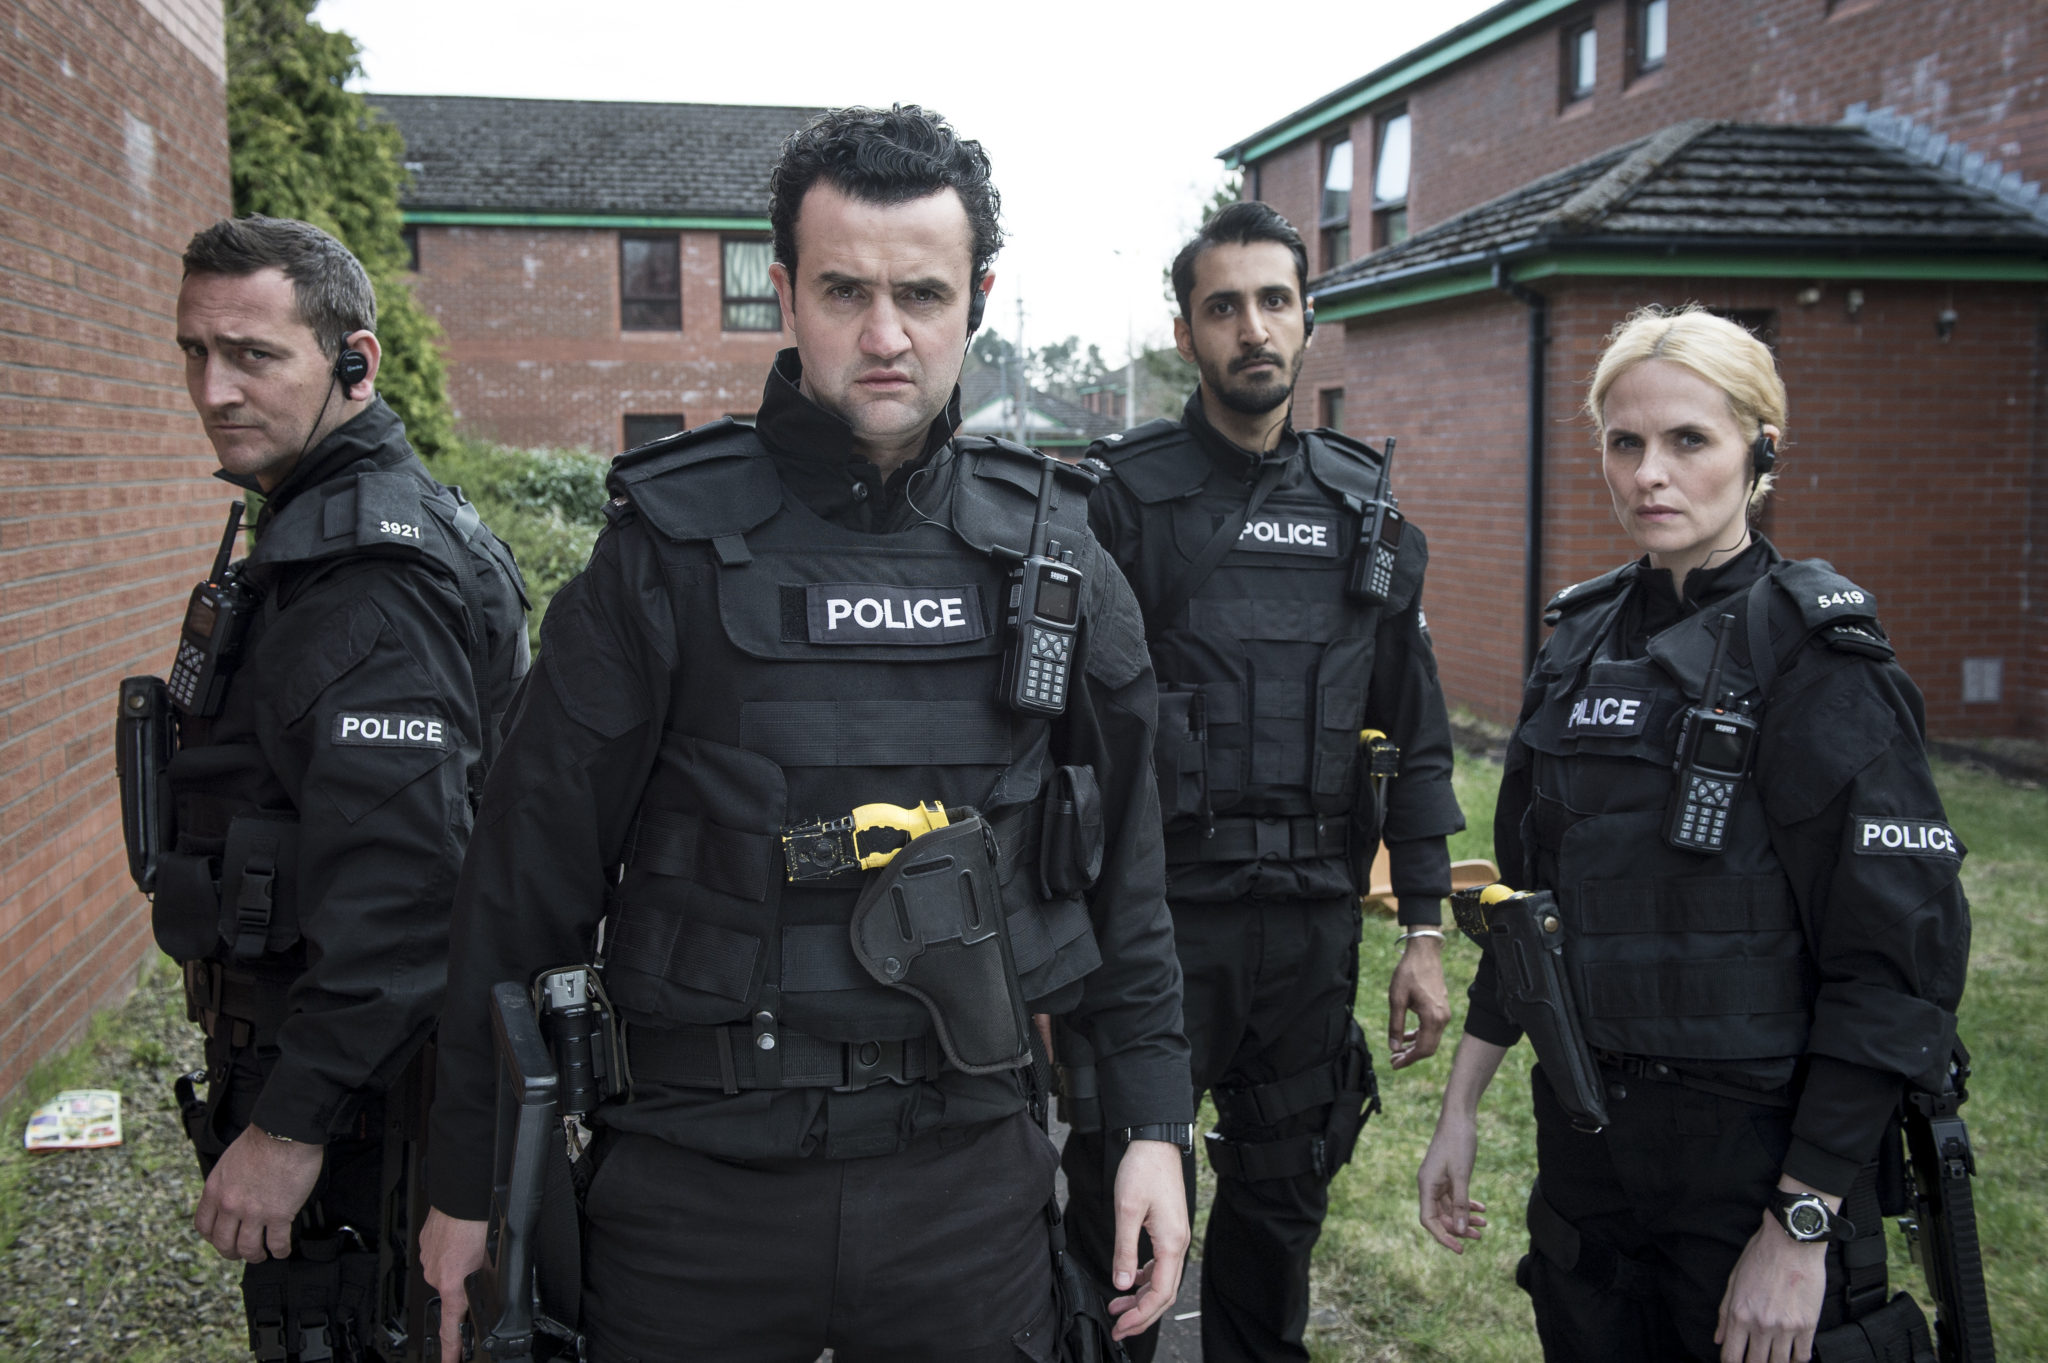 LINEOFDUTY3_BBC_EP1-2342-1